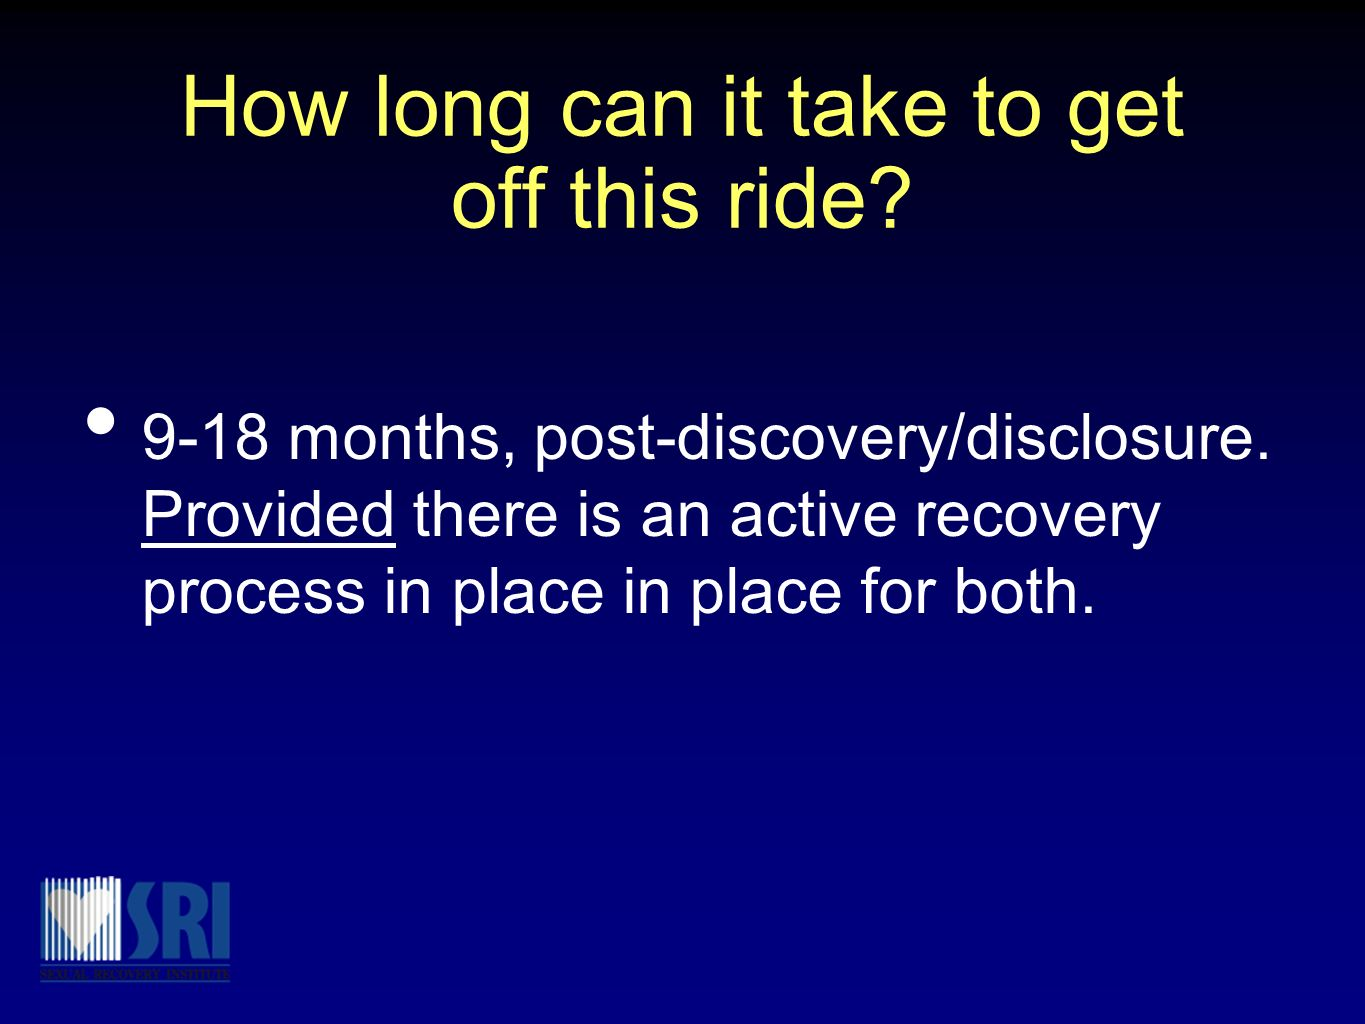 How long can it take to get off this ride? 9-18 months, post-discovery/disclosure. Provided there is an active recovery process in place in place for